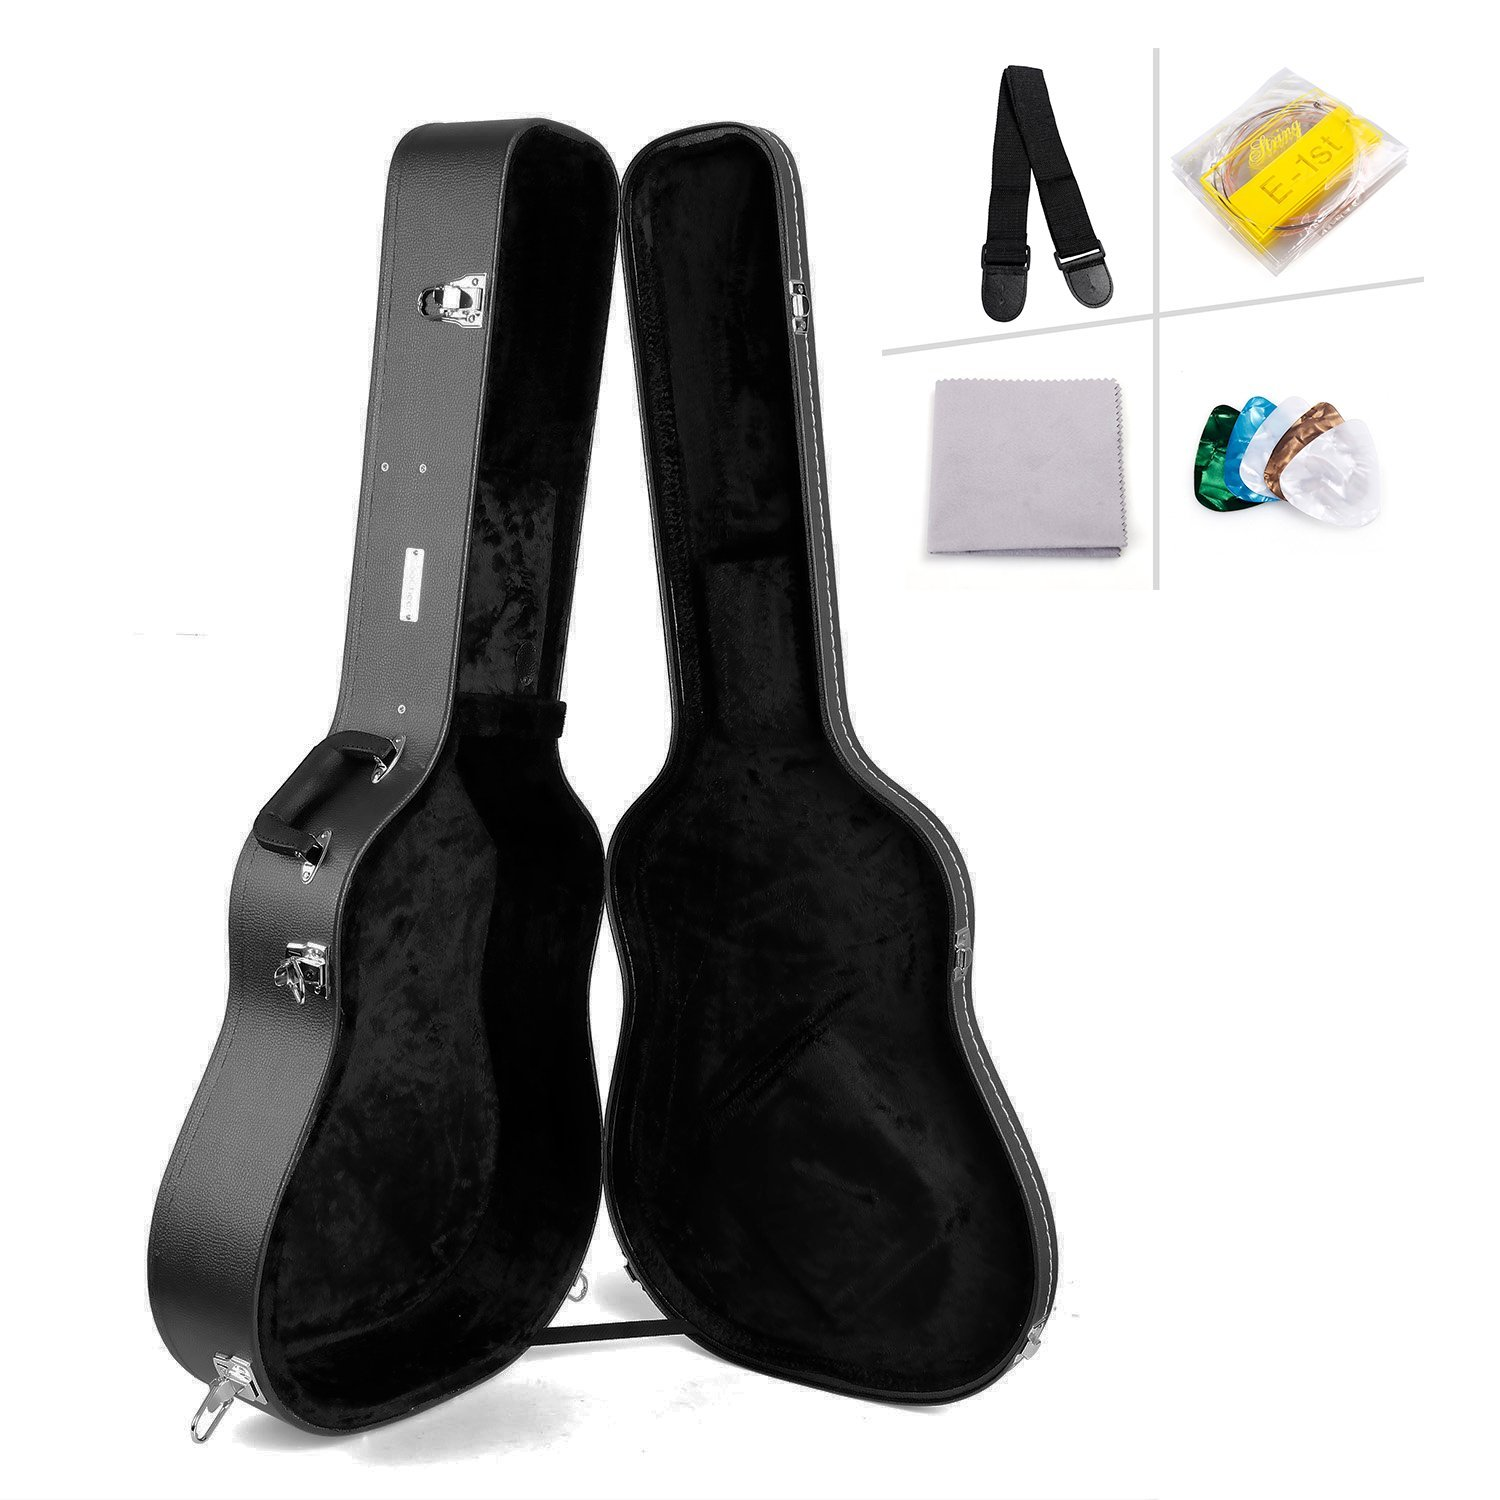 Coocheer Acoustic Guitar Case Dreadnought Hard Shell Leather Guitar Case with Picks, String, Wiper, Guitar Strap-for 41'' Acoustic Guitar,Classic Guitar (black) by COOCHEER (Image #1)